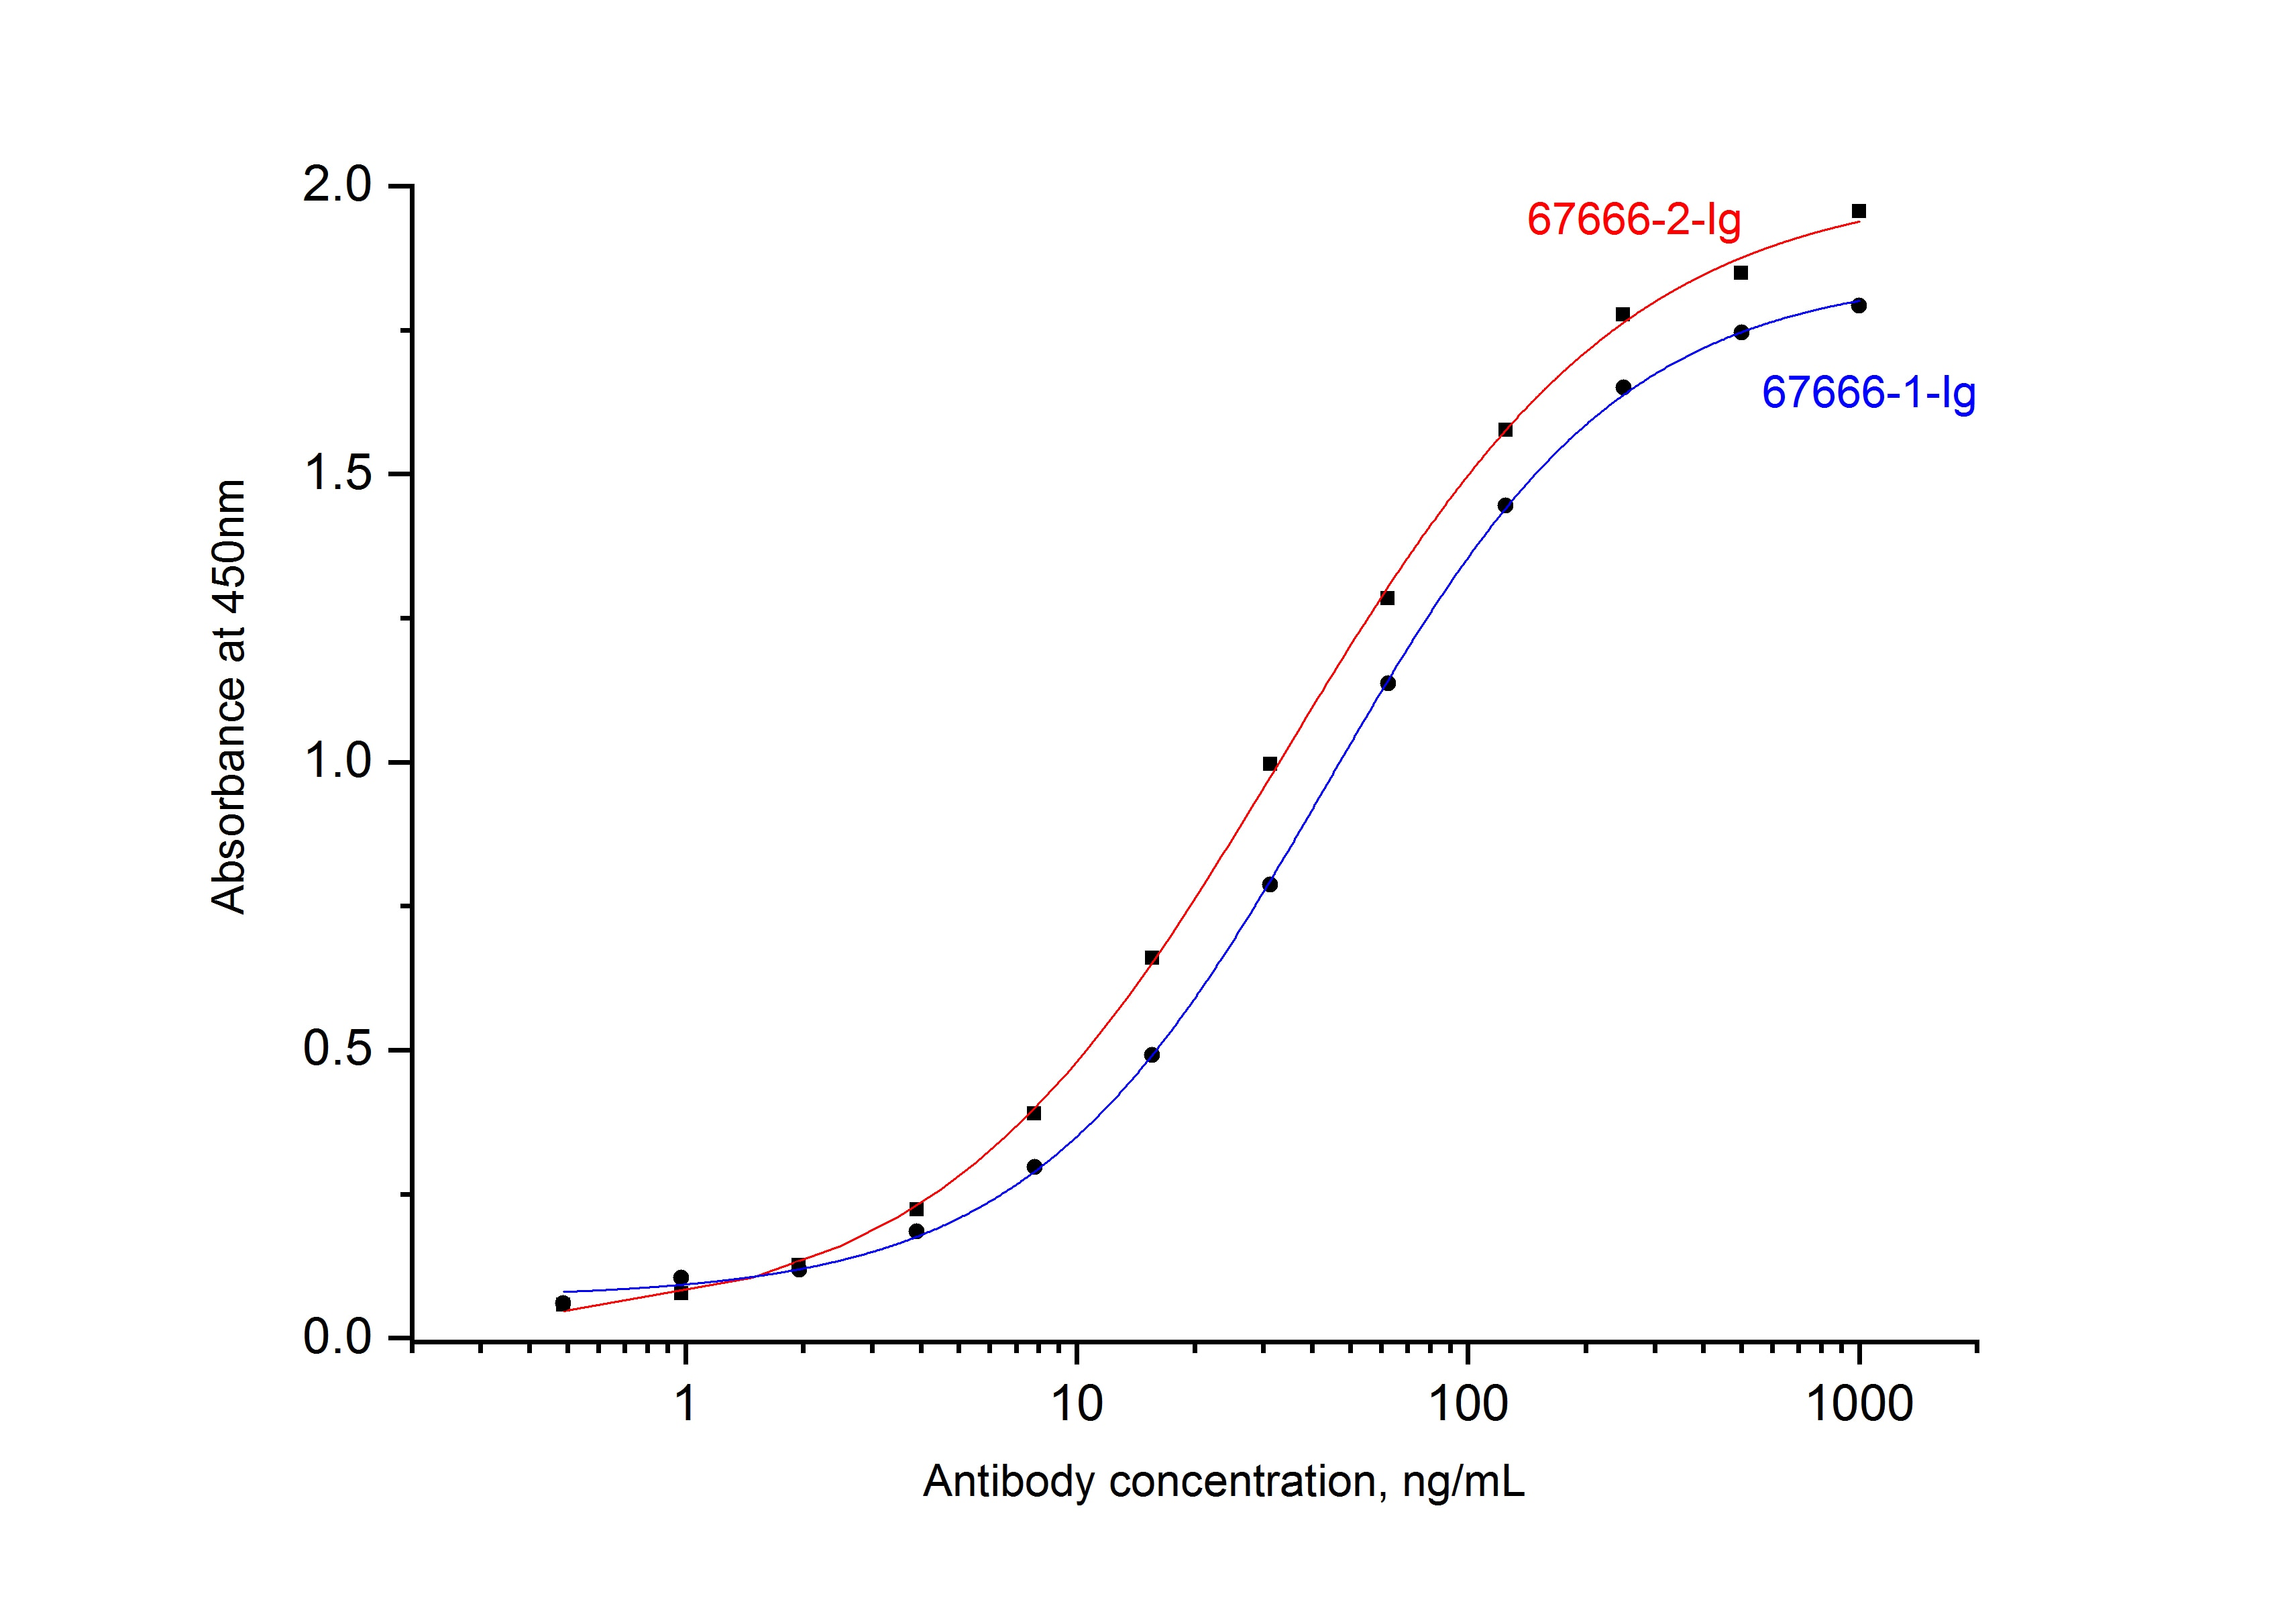 ELISA experiment of Recombinant protein using 67666-2-Ig